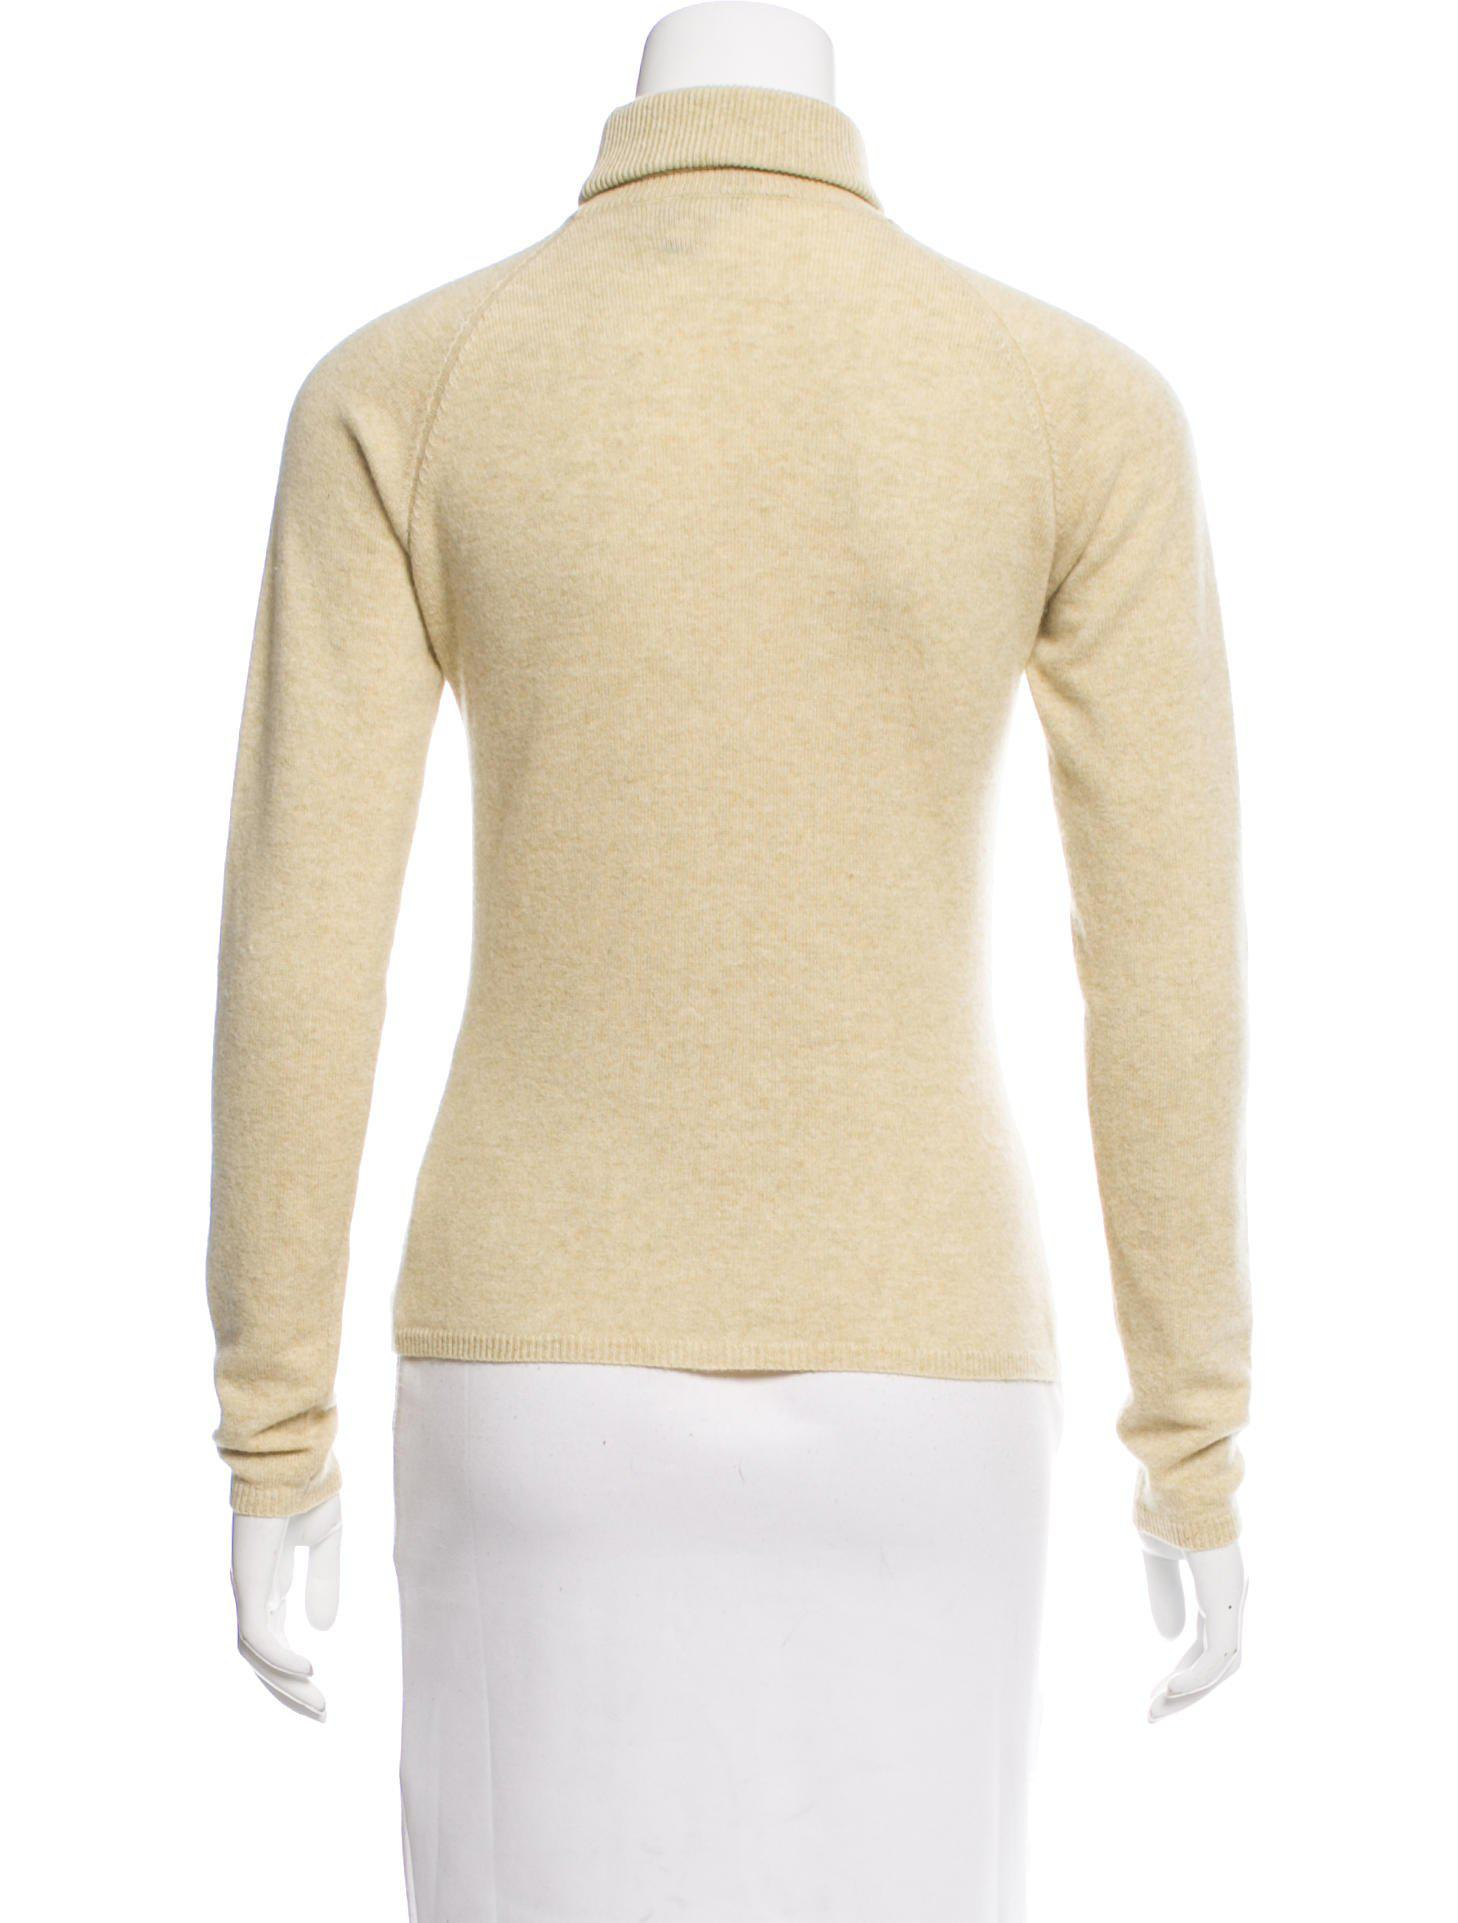 Loro piana Cashmere Turtleneck Sweater in Yellow | Lyst